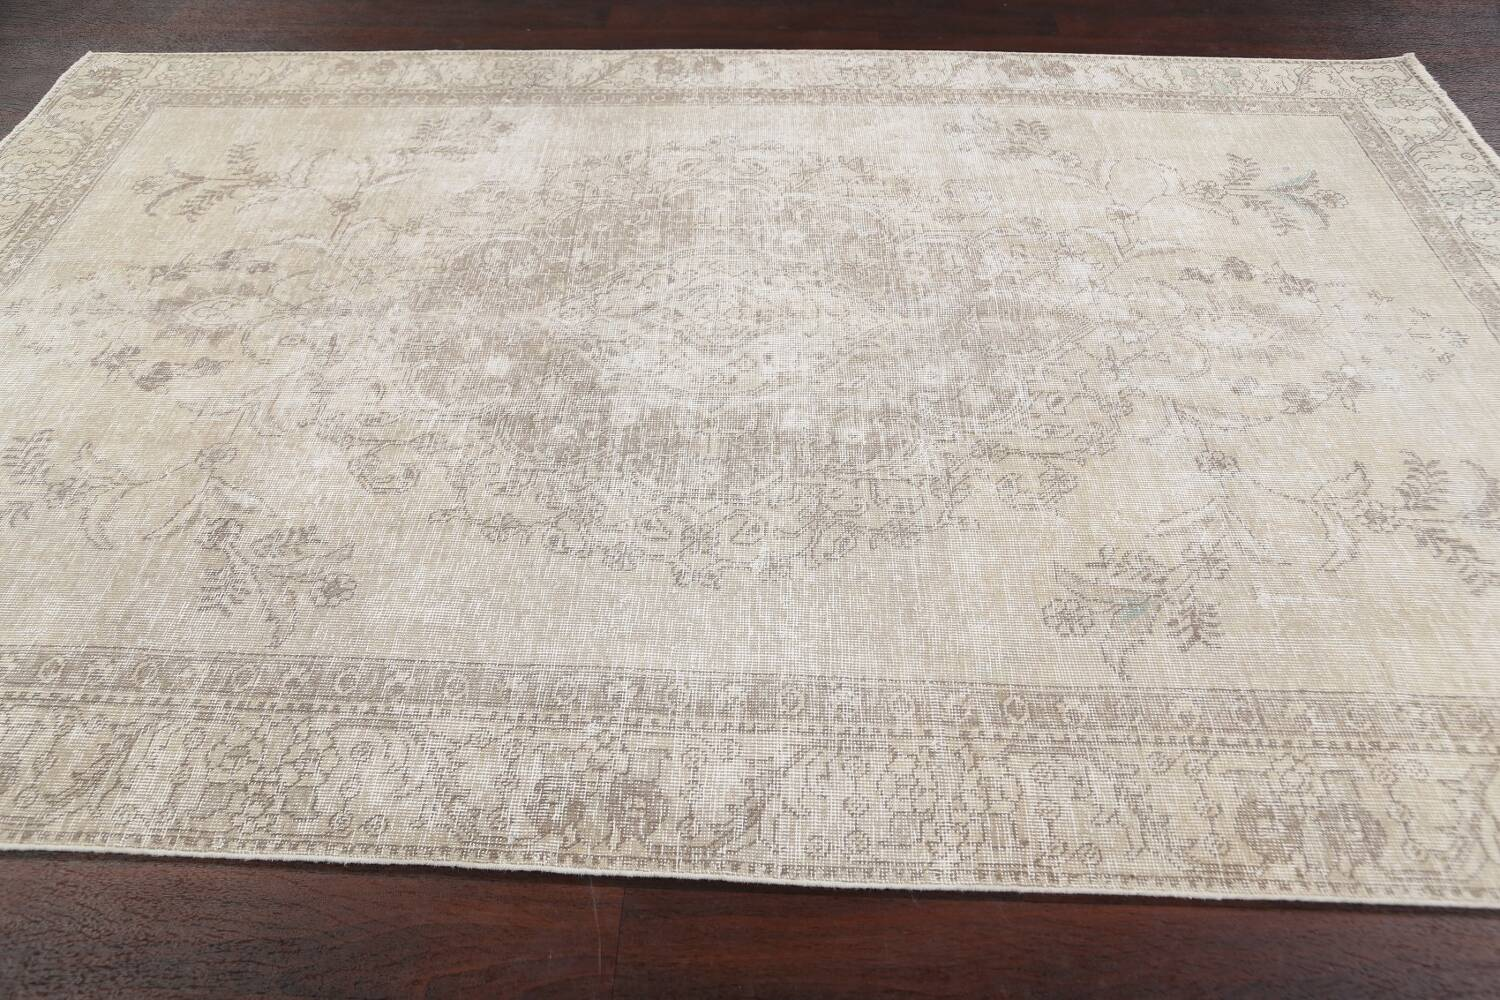 Muted Distressed Floral Tabriz Persian Area Rug 6x9 image 14